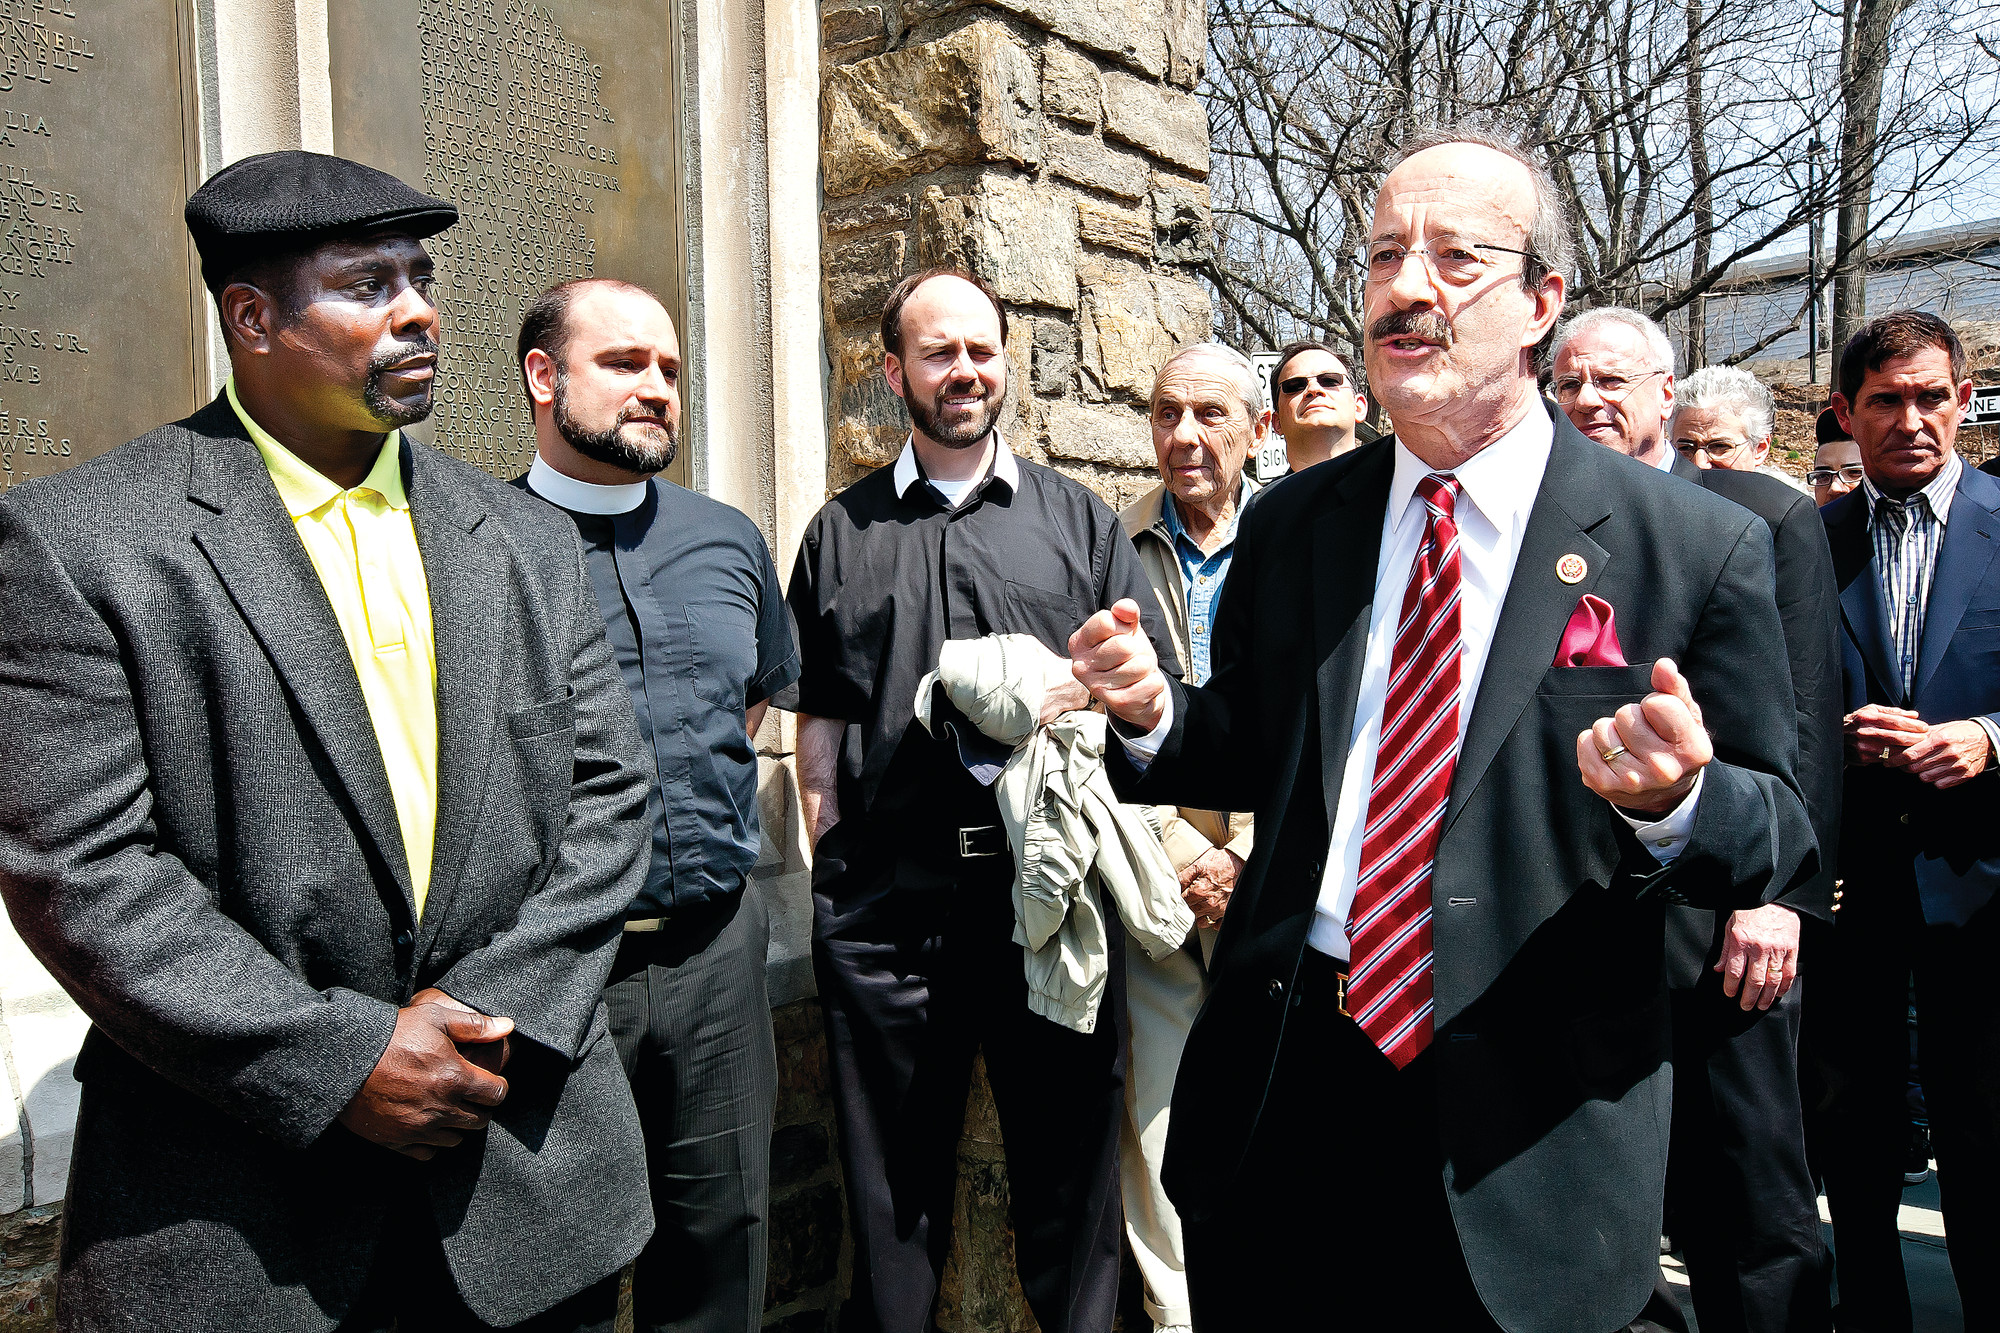 CONGRESSMAN Eliot Engel, at right in foreground, spoke before a gathering of residents, religious leaders and elected officials at a Sunday vigil in support of Menuhin Hart, left. Unknown vandals have besmirched Mr. Hart's truck with racist graffiti. Behind Mr. Engel are state Sen. Jeff Klein, Assemblyman Jeffrey Dinowitz and Councilman Andrew Cohen.